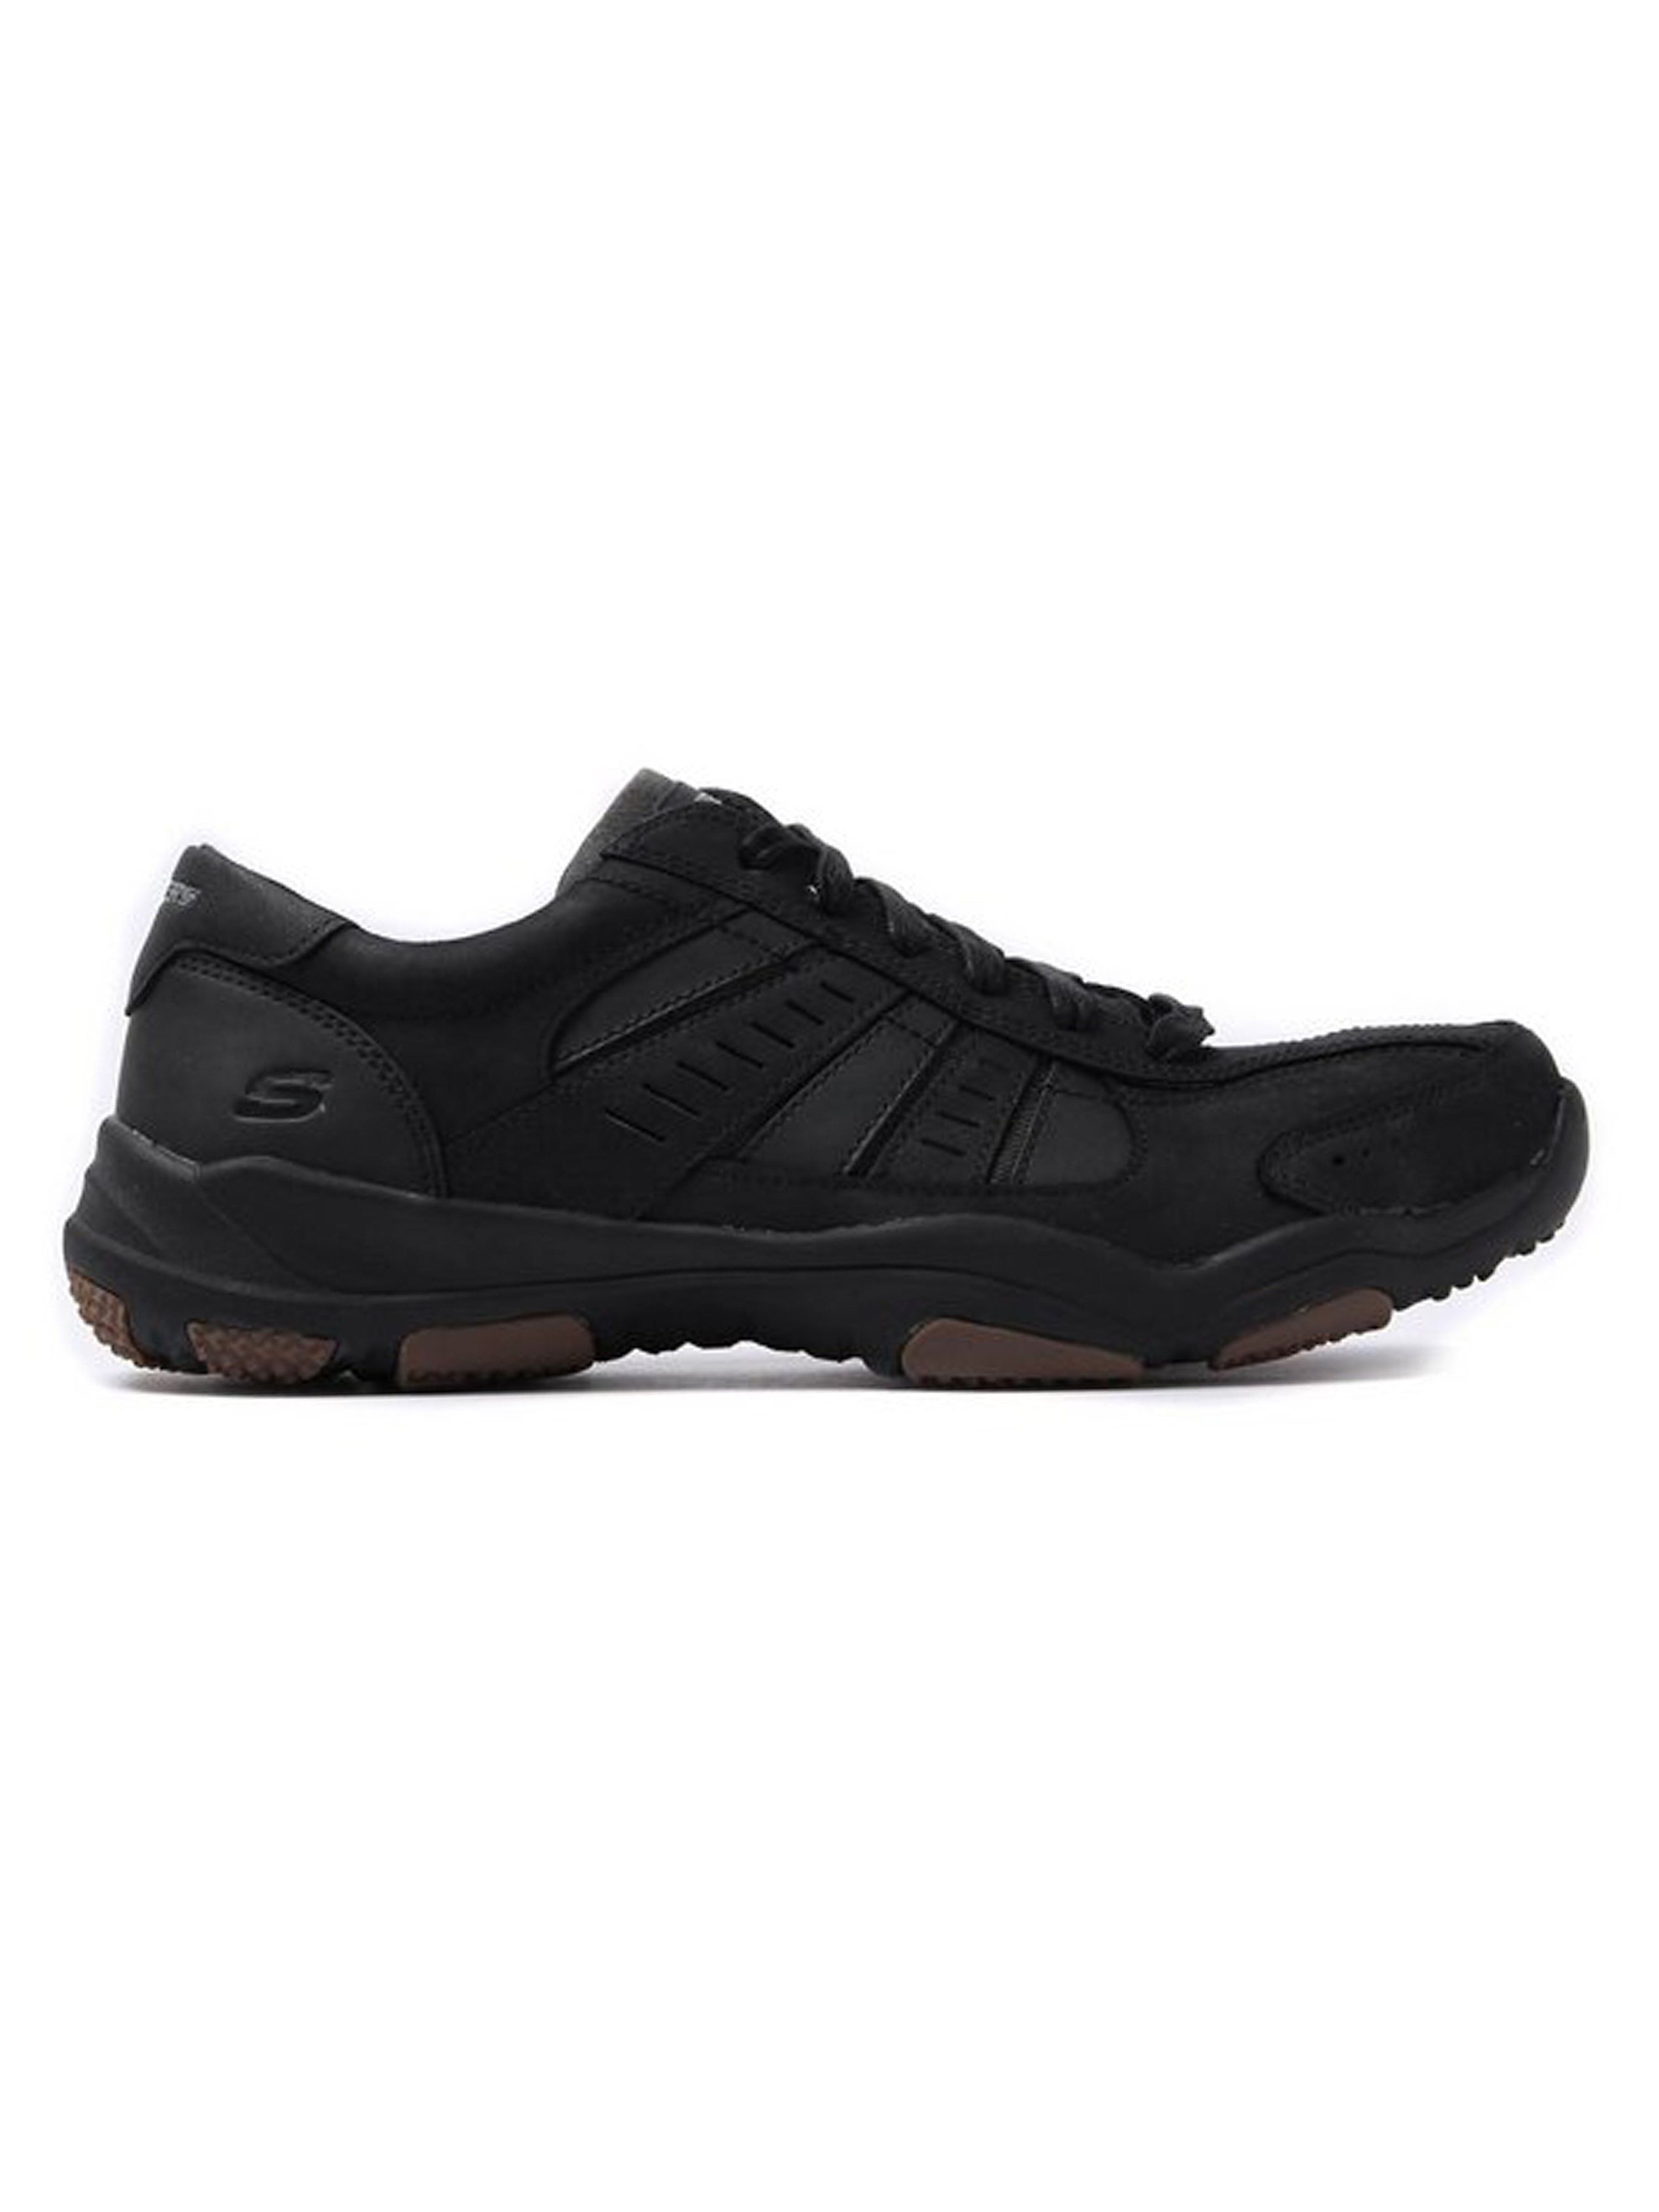 Skechers Men's Larson Nerick Lace-Up Leather Trainers - Black